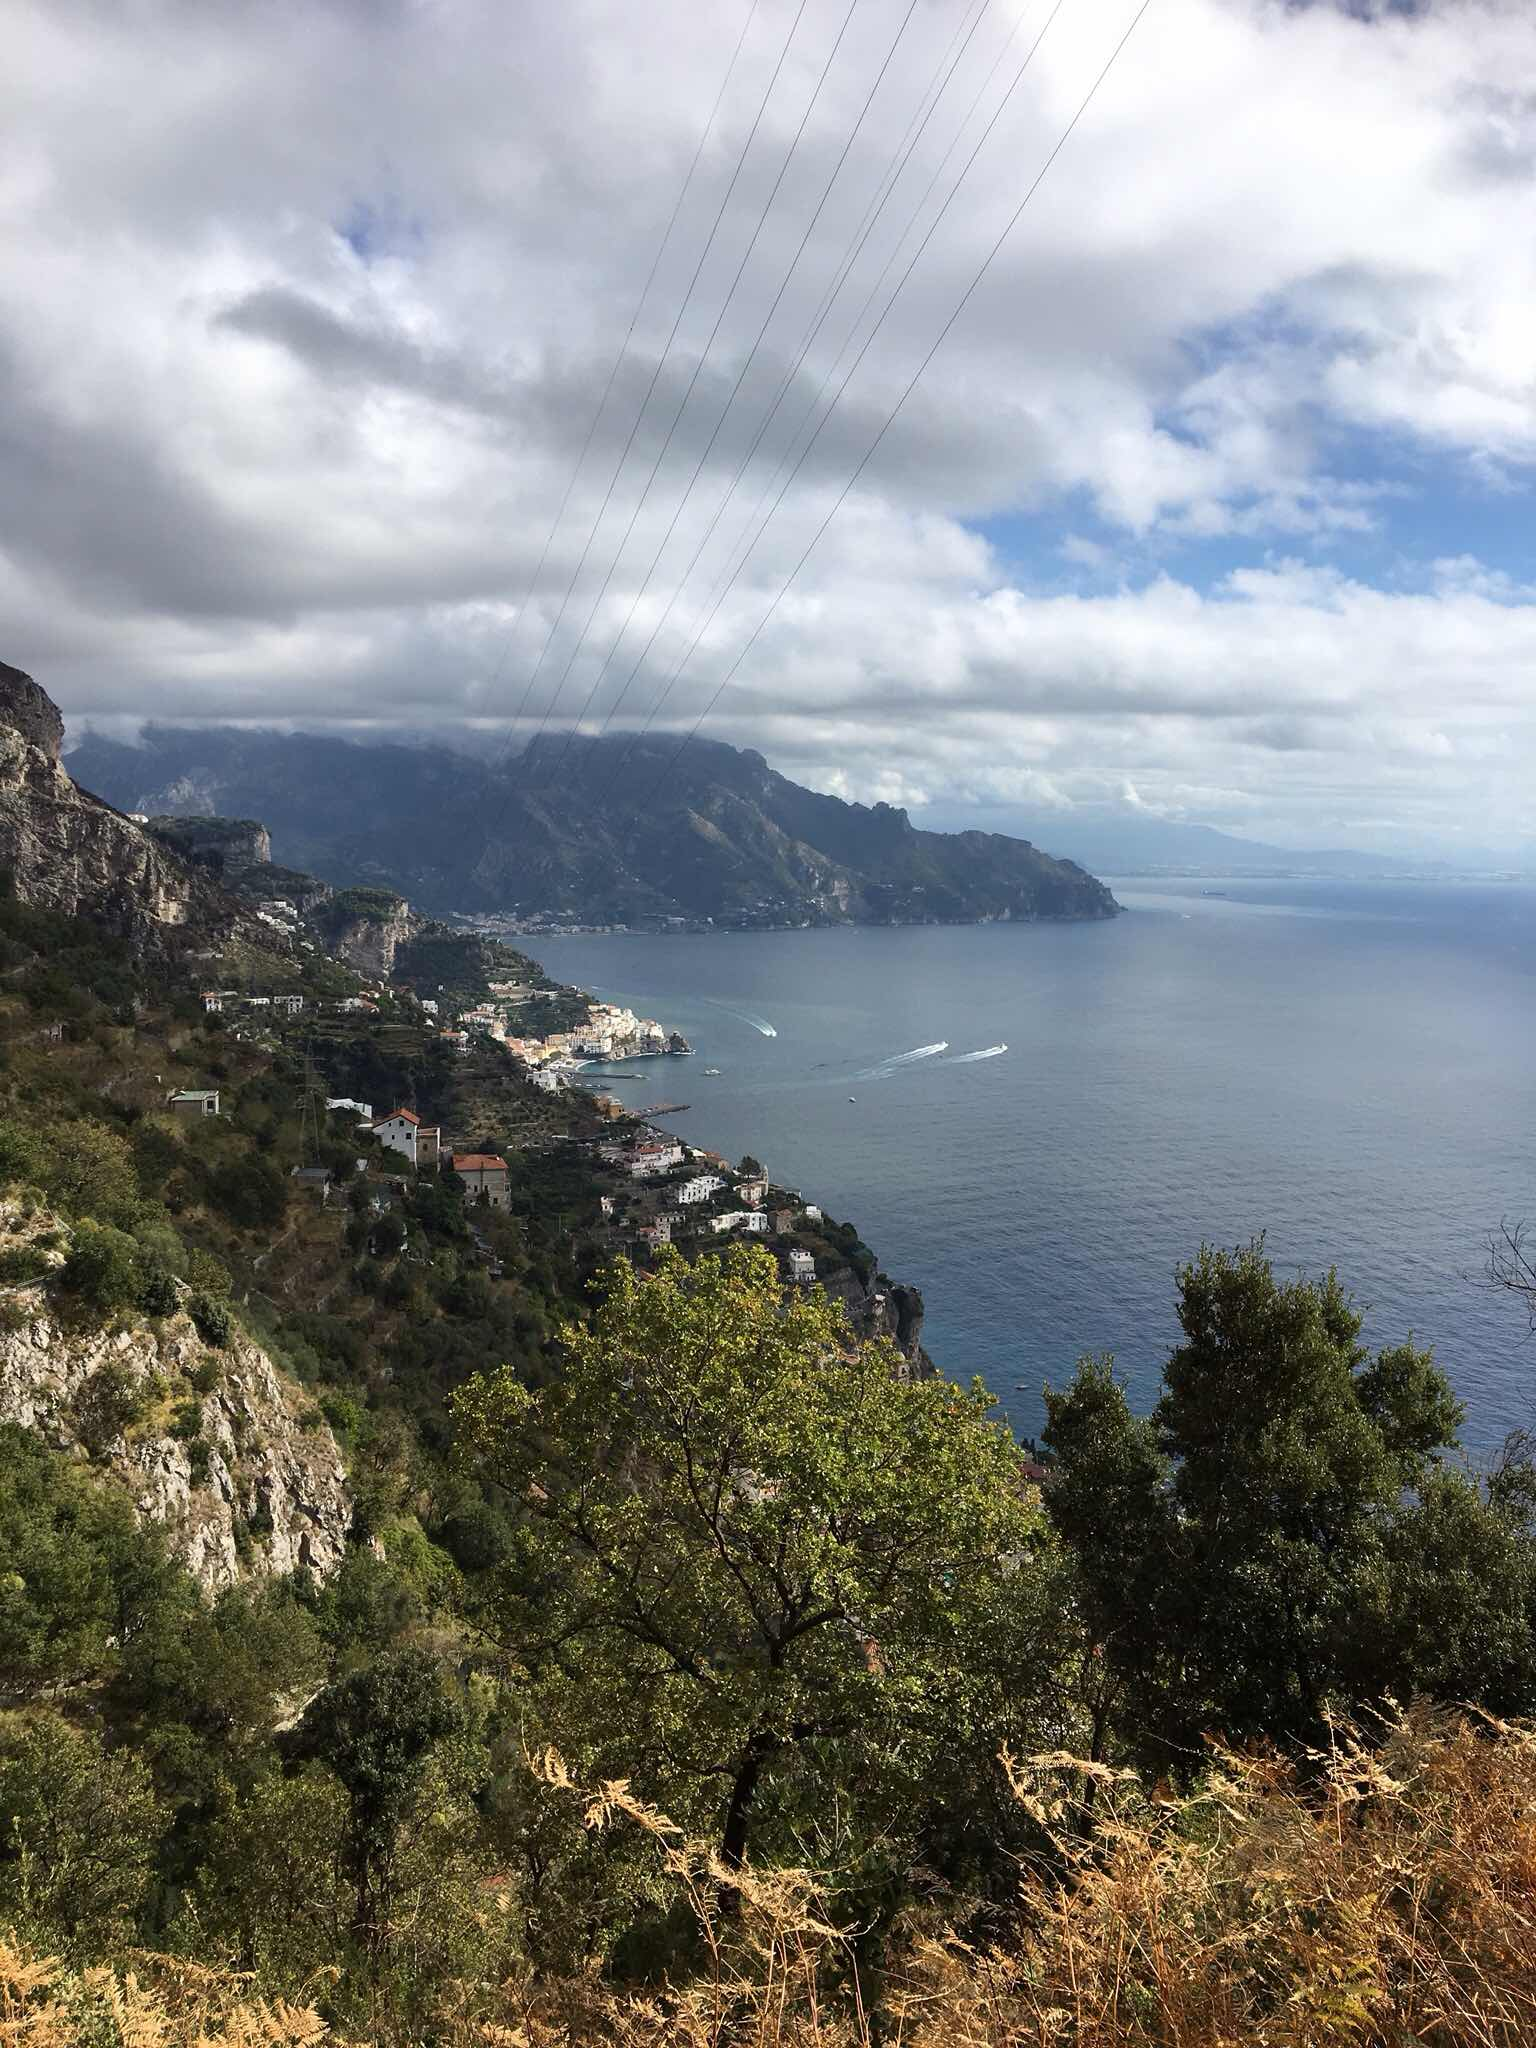 View of the Amalfi coast from Agerola